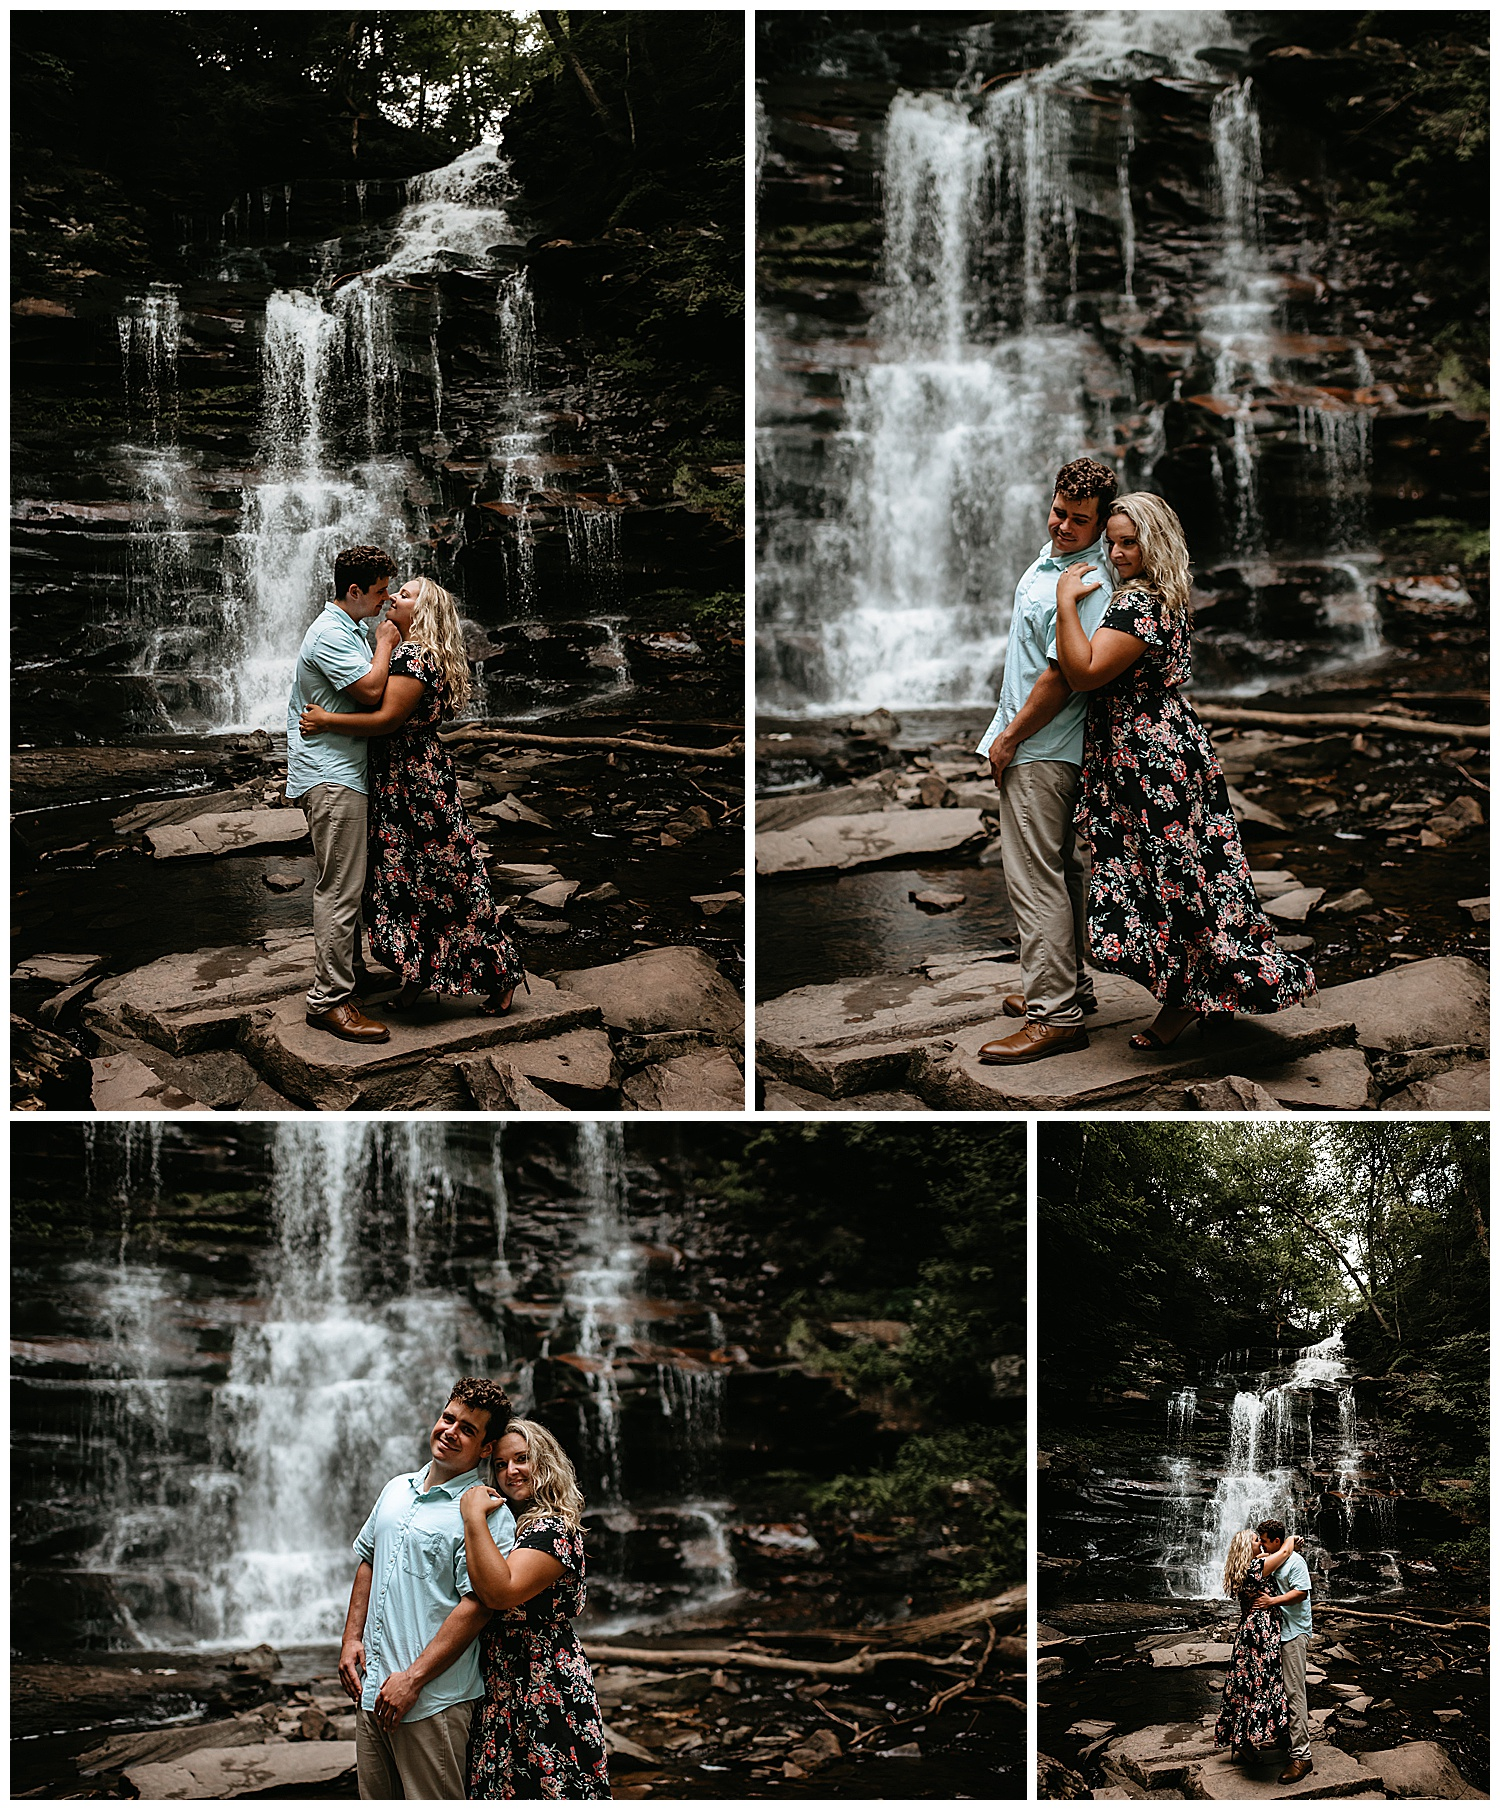 NEPA-Bloomsburg-Lehigh-Valley-Wedding-Photographer-Engagement-session-at-Ricketts-Glen-State-Park_0017.jpg